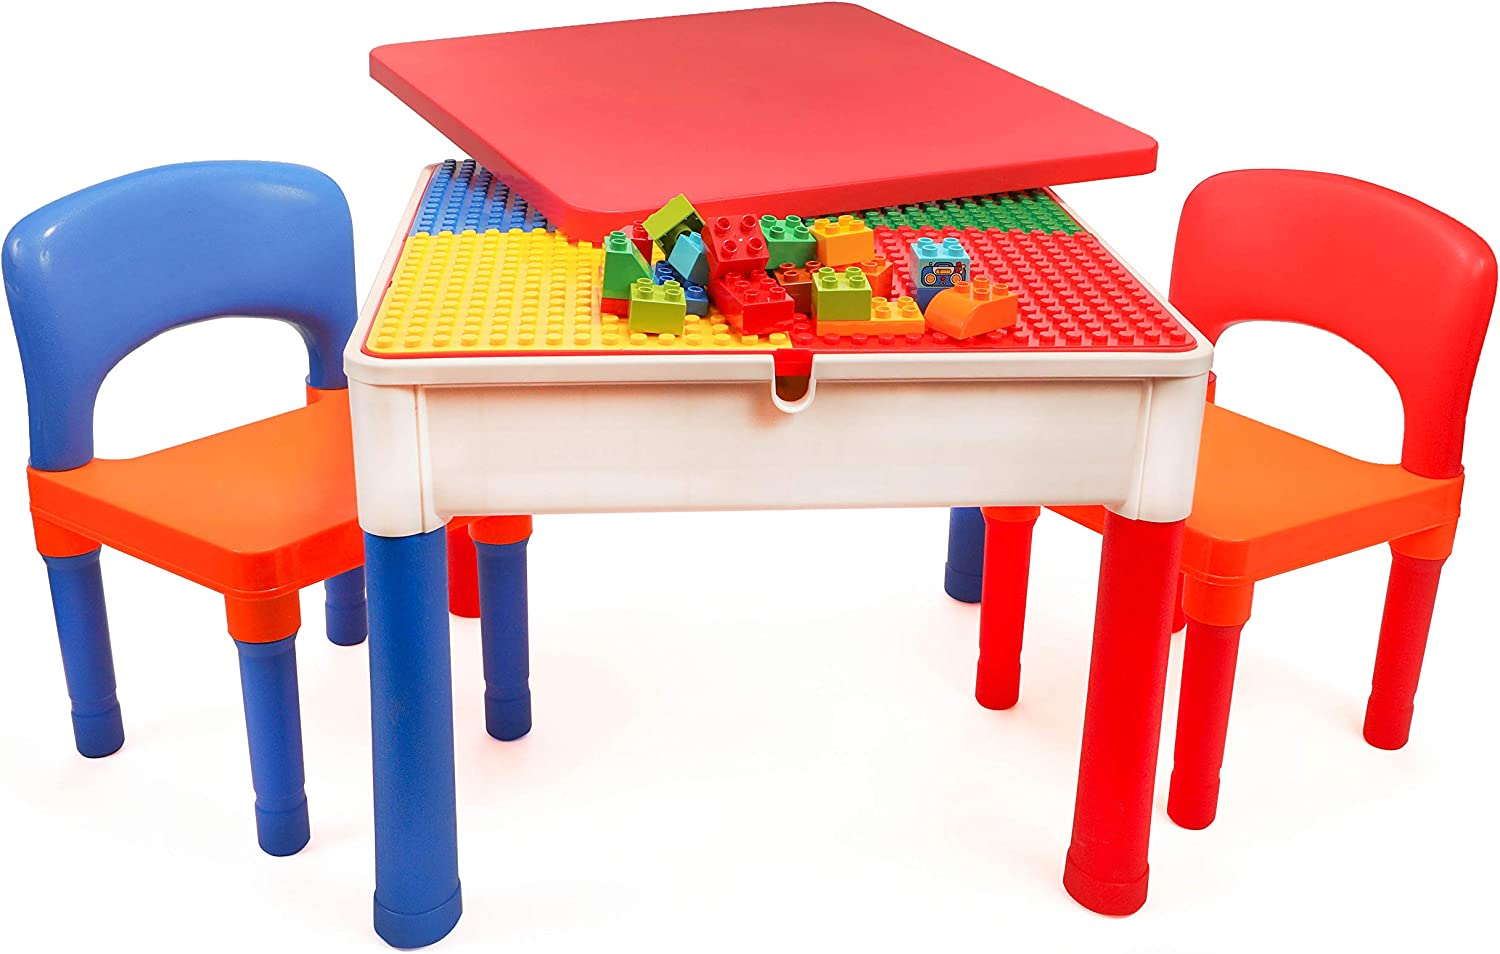 Amazon Com Smart Builder 3 In 1 Activity Table And Chair Set Craft Activities Construction And Building Blocks Compatible Table With Storage Area Kitchen Dining